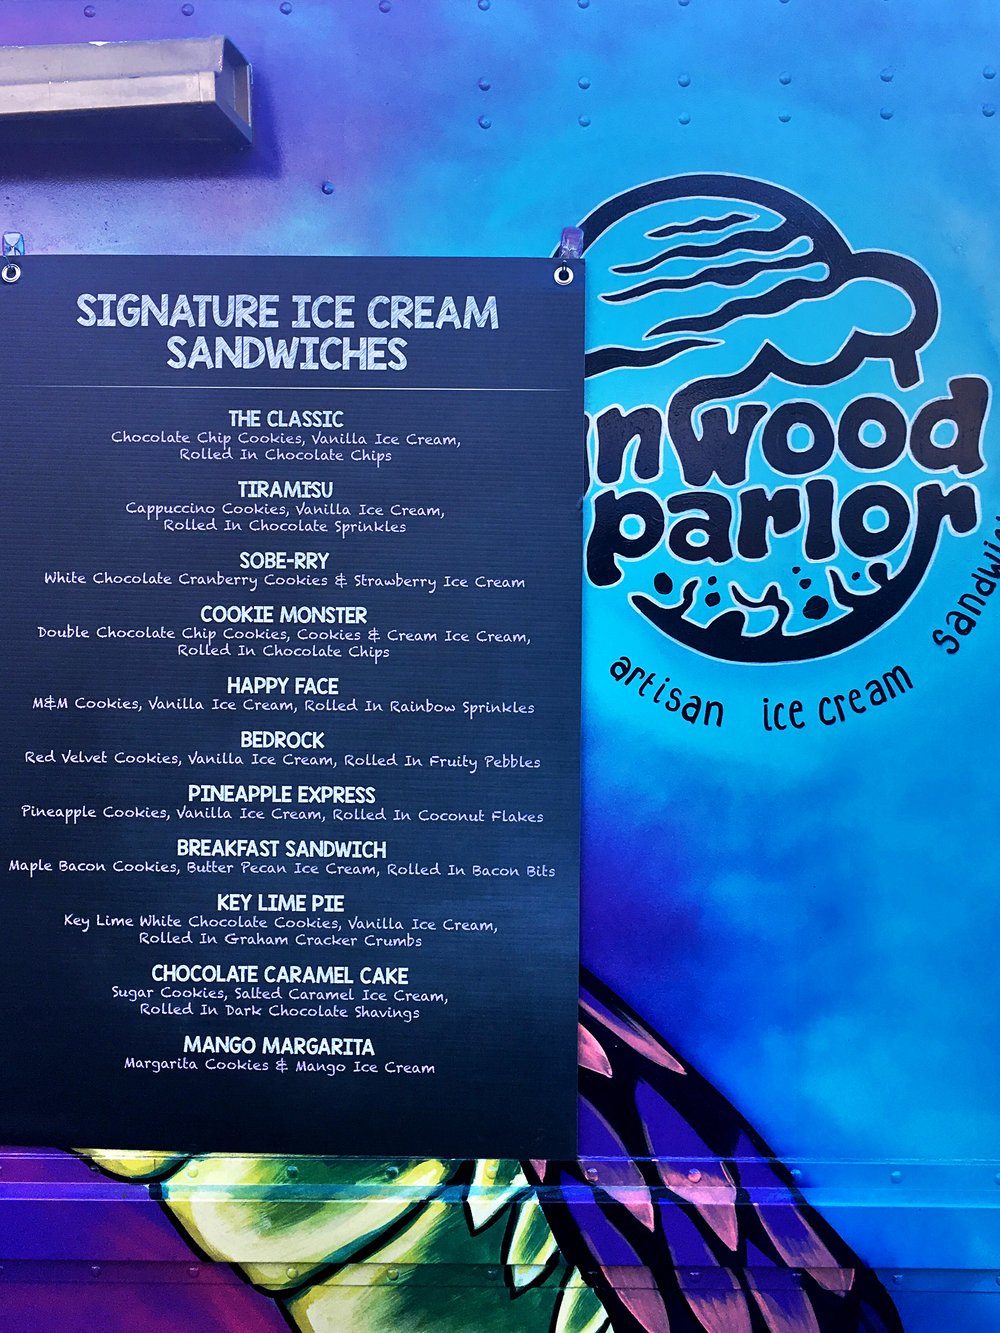 Wynwood Parlor Ice Cream Sandwich Truck Menu